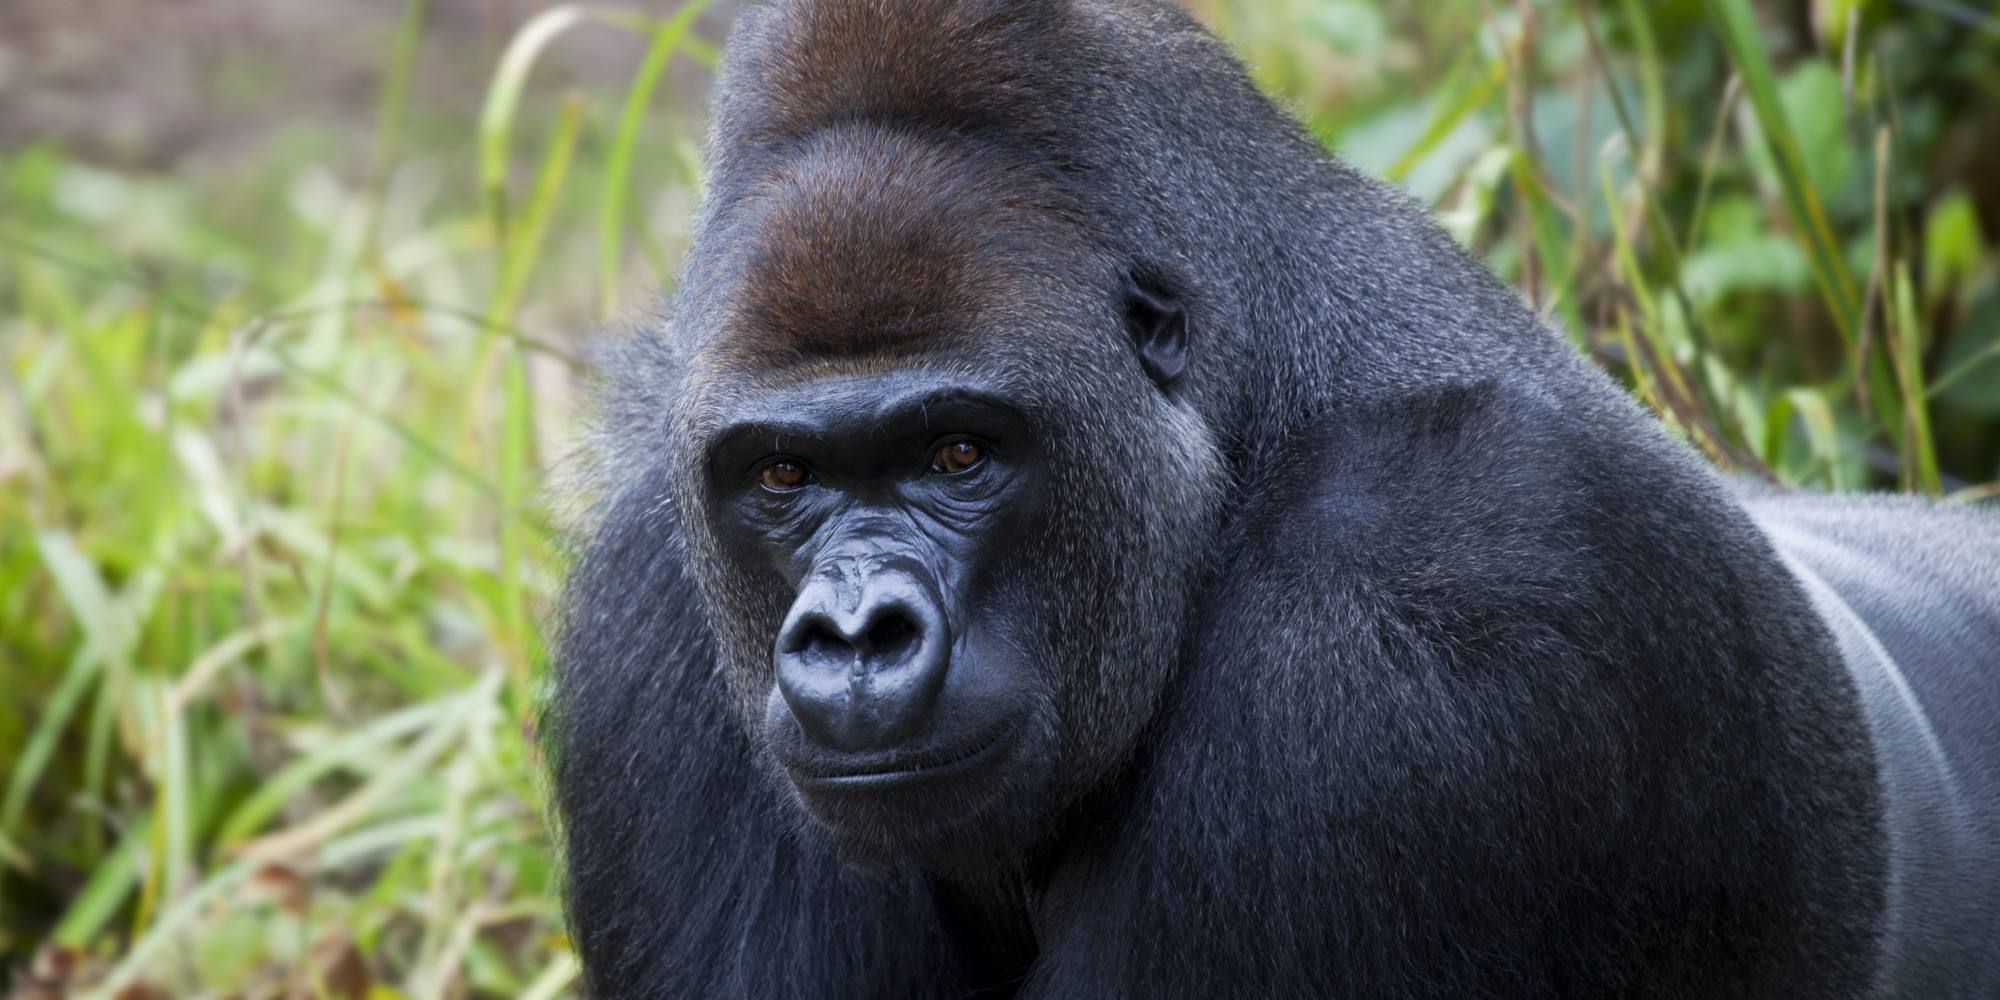 Is Your Smartphone Killing Gorillas?